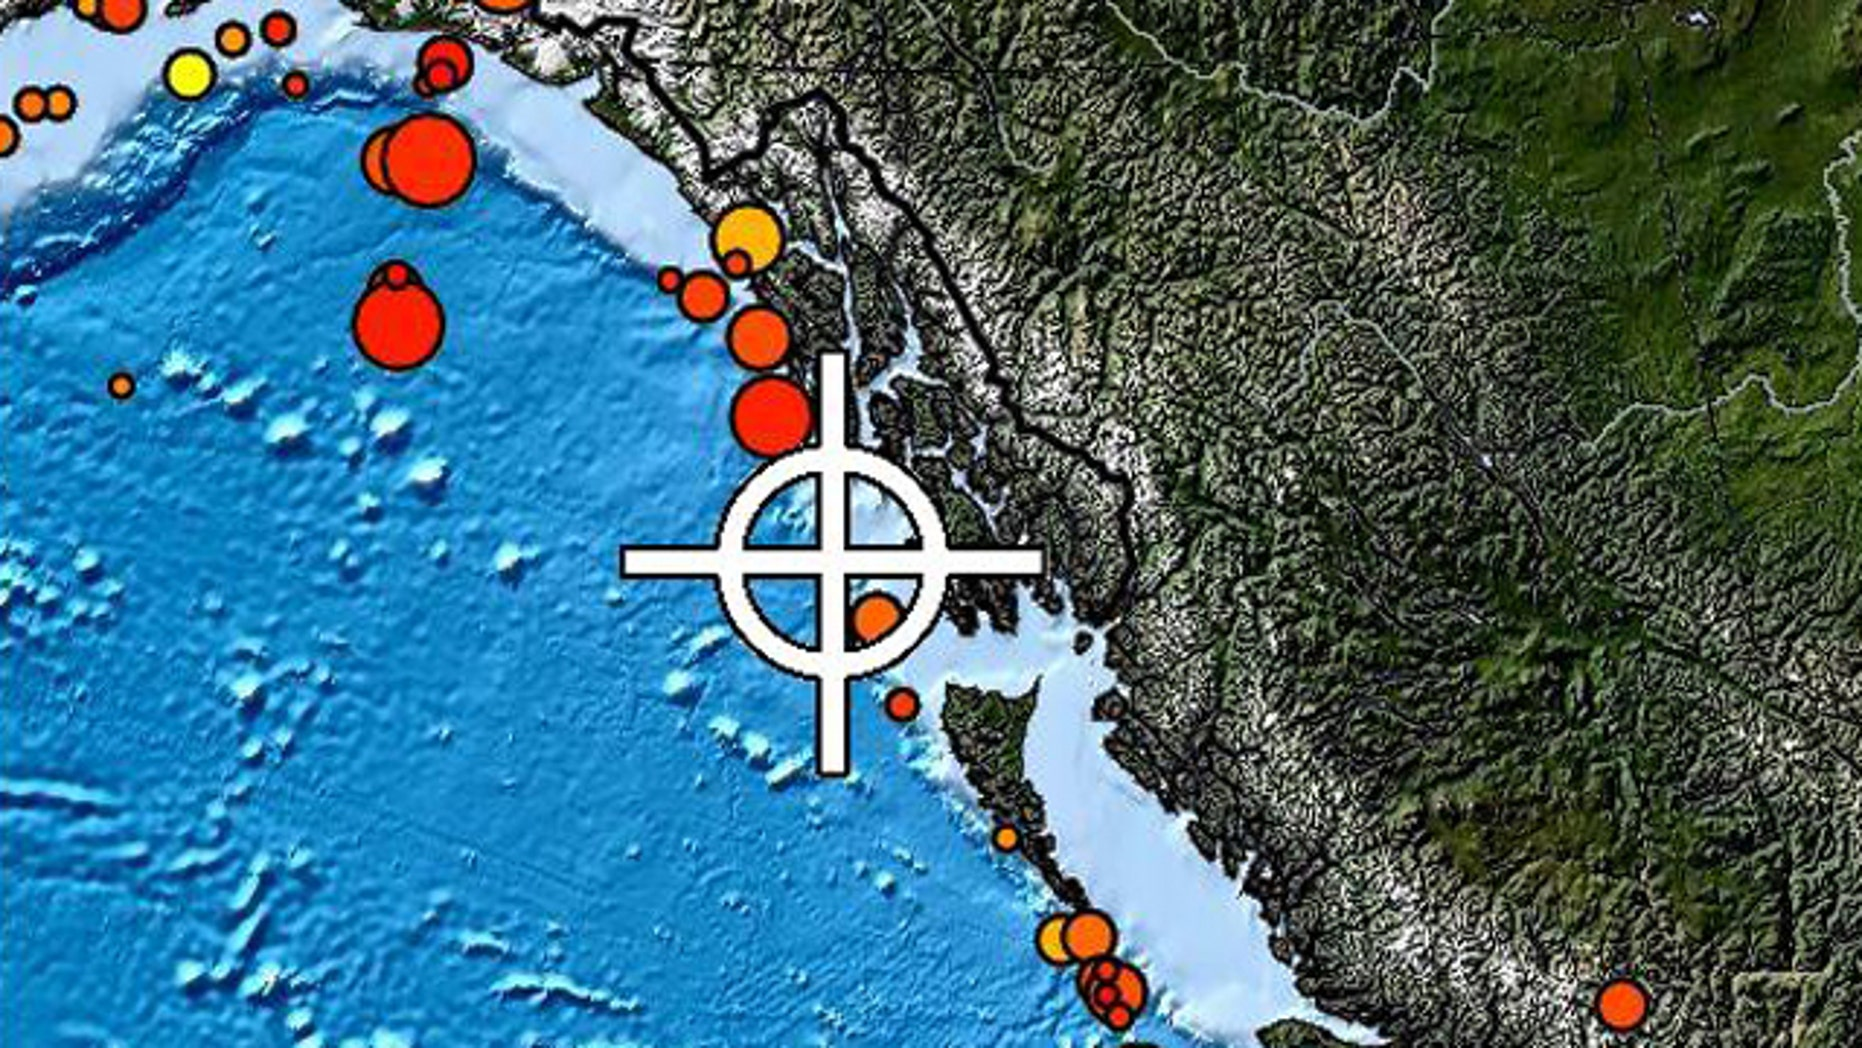 Jan. 5, 2012: The U.S. Geological Survey says a magnitude 7.6 quake struck about 60 miles west of Craig, Alaska.